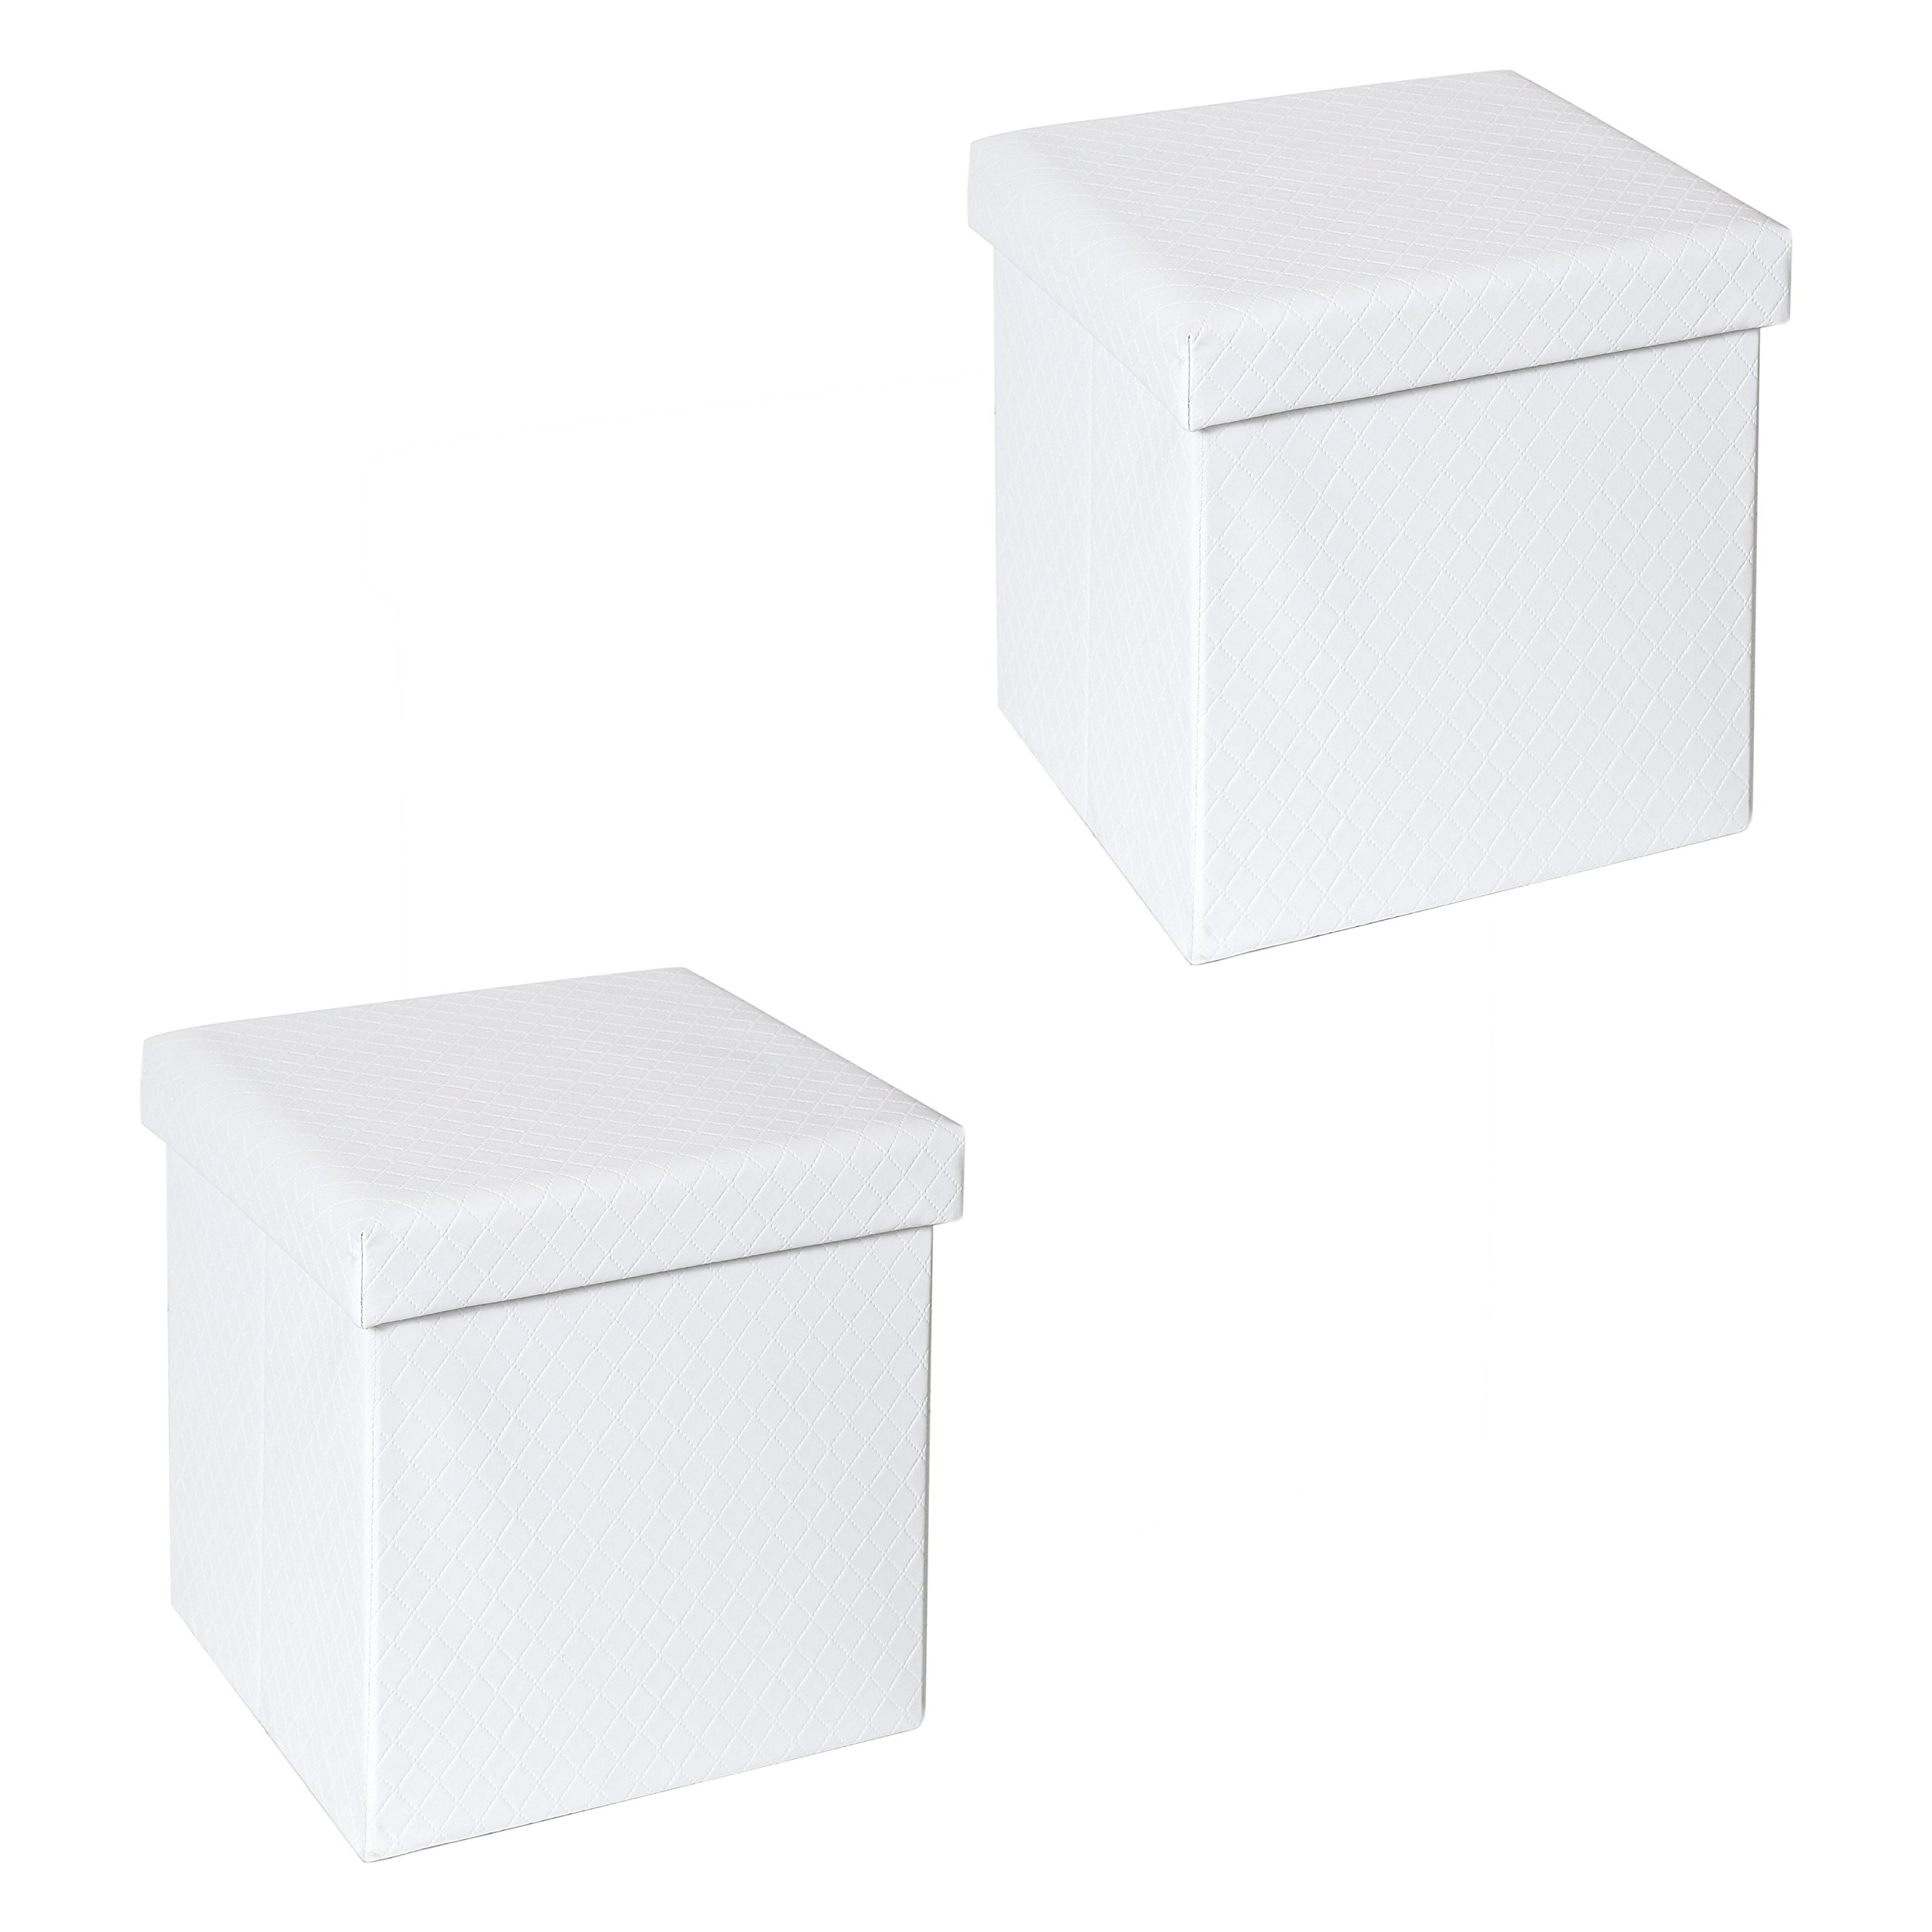 Seville Classics WEB557 Storage Ottoman, White Quilted (Two Pack)